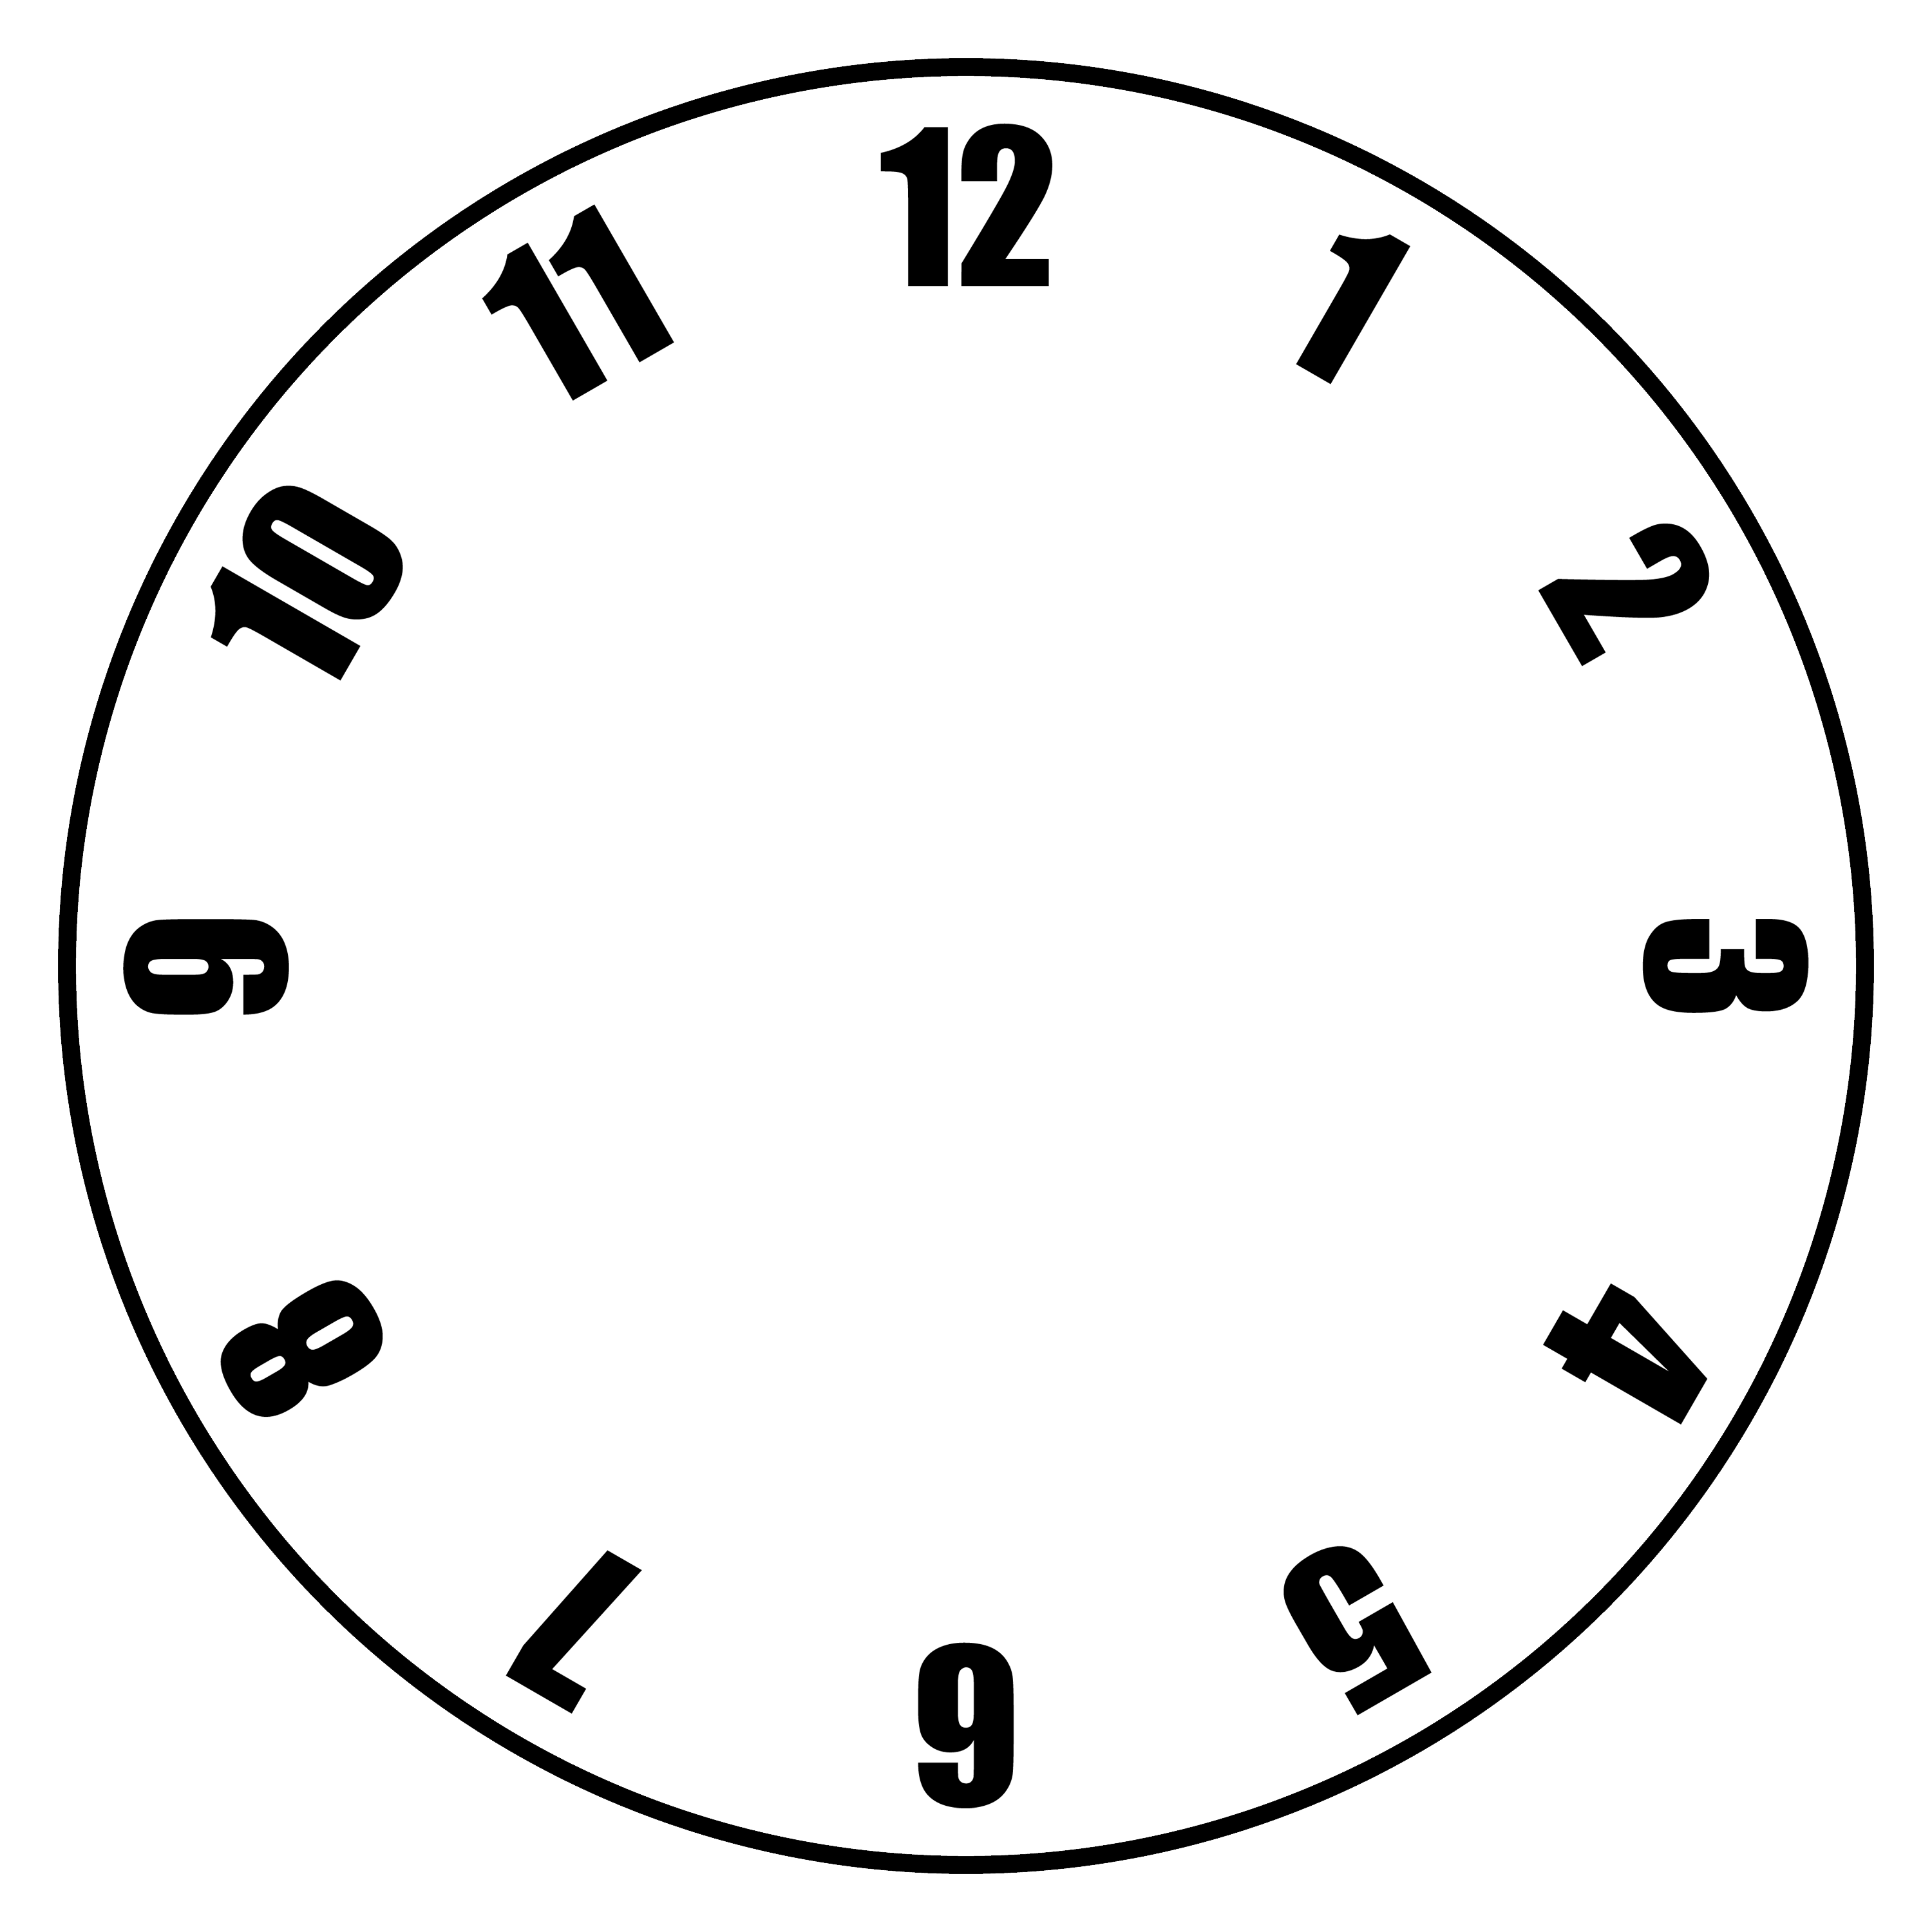 Clocks clipart number, Clocks number Transparent FREE for.